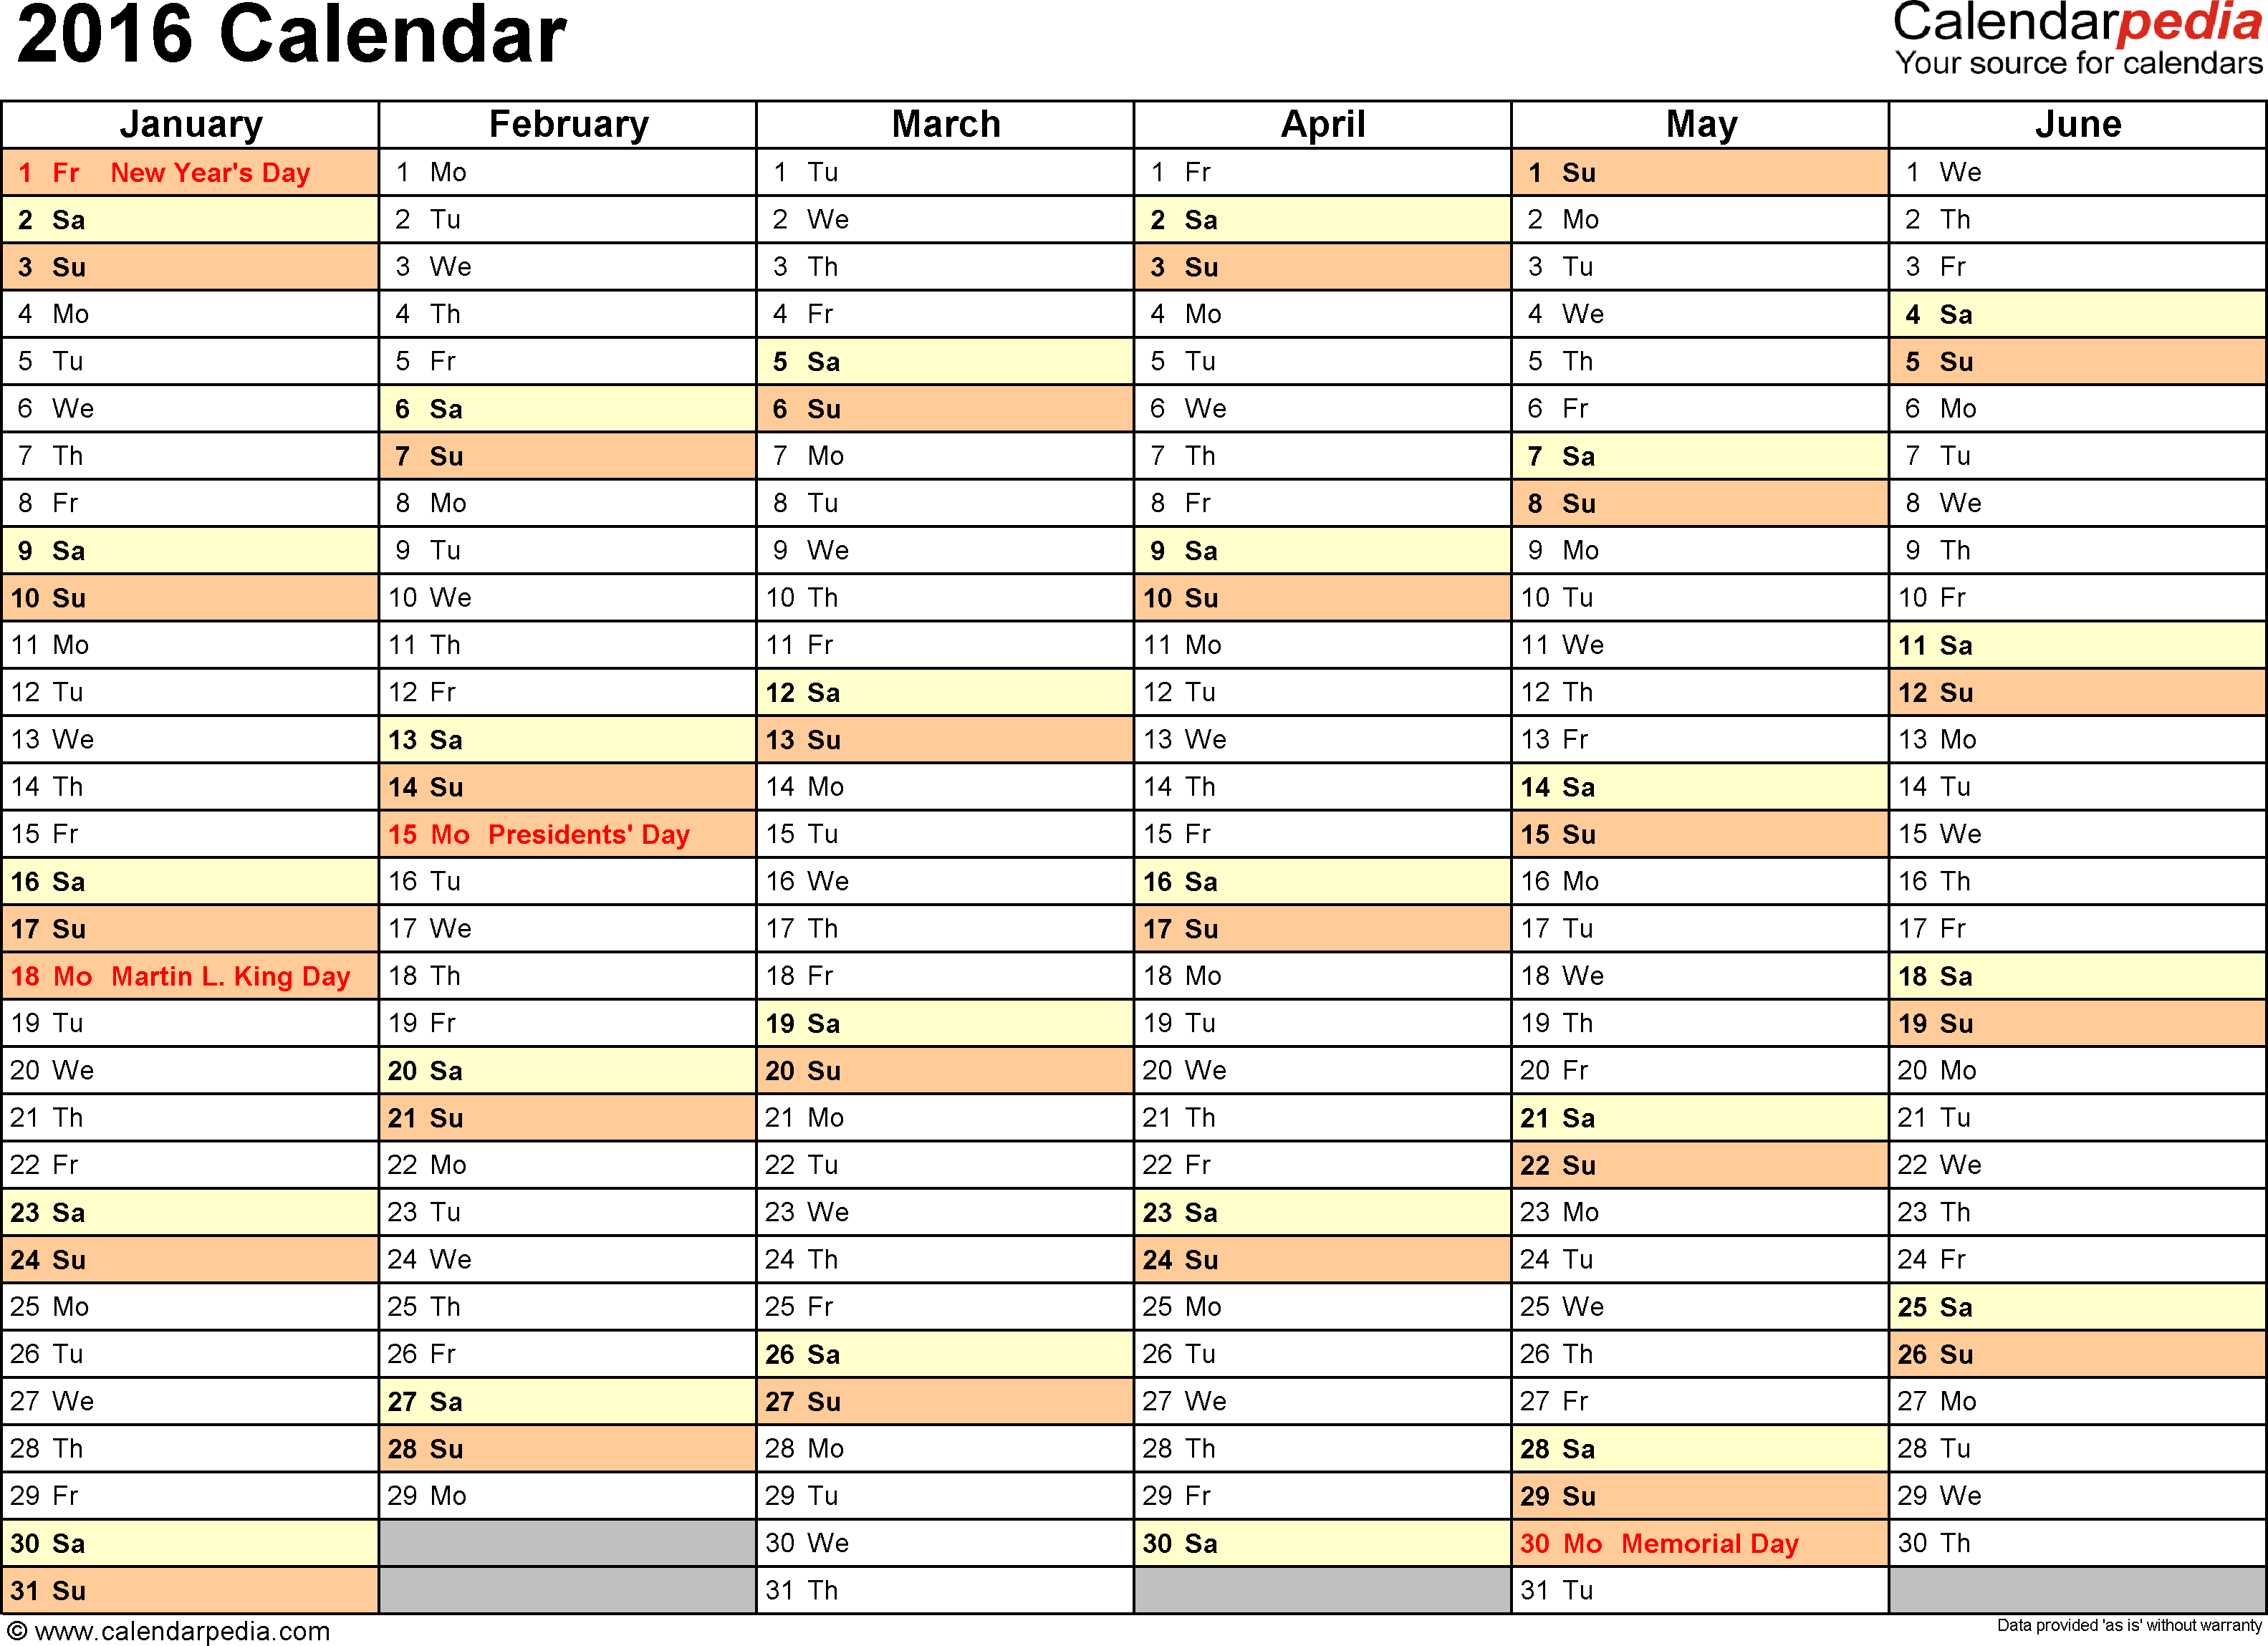 Ediblewildsus  Surprising  Calendar  Download  Free Printable Excel Templates Xls With Lovely Template   Calendar For Excel Months Horizontally  Pages Landscape Orientation With Cool How Do You Insert A Column In Excel Also Excel Variance In Addition Chi Square Test Excel And How To Open Excel In Separate Windows As Well As How To Calculate Cagr In Excel Additionally Excel Format Date From Calendarpediacom With Ediblewildsus  Lovely  Calendar  Download  Free Printable Excel Templates Xls With Cool Template   Calendar For Excel Months Horizontally  Pages Landscape Orientation And Surprising How Do You Insert A Column In Excel Also Excel Variance In Addition Chi Square Test Excel From Calendarpediacom